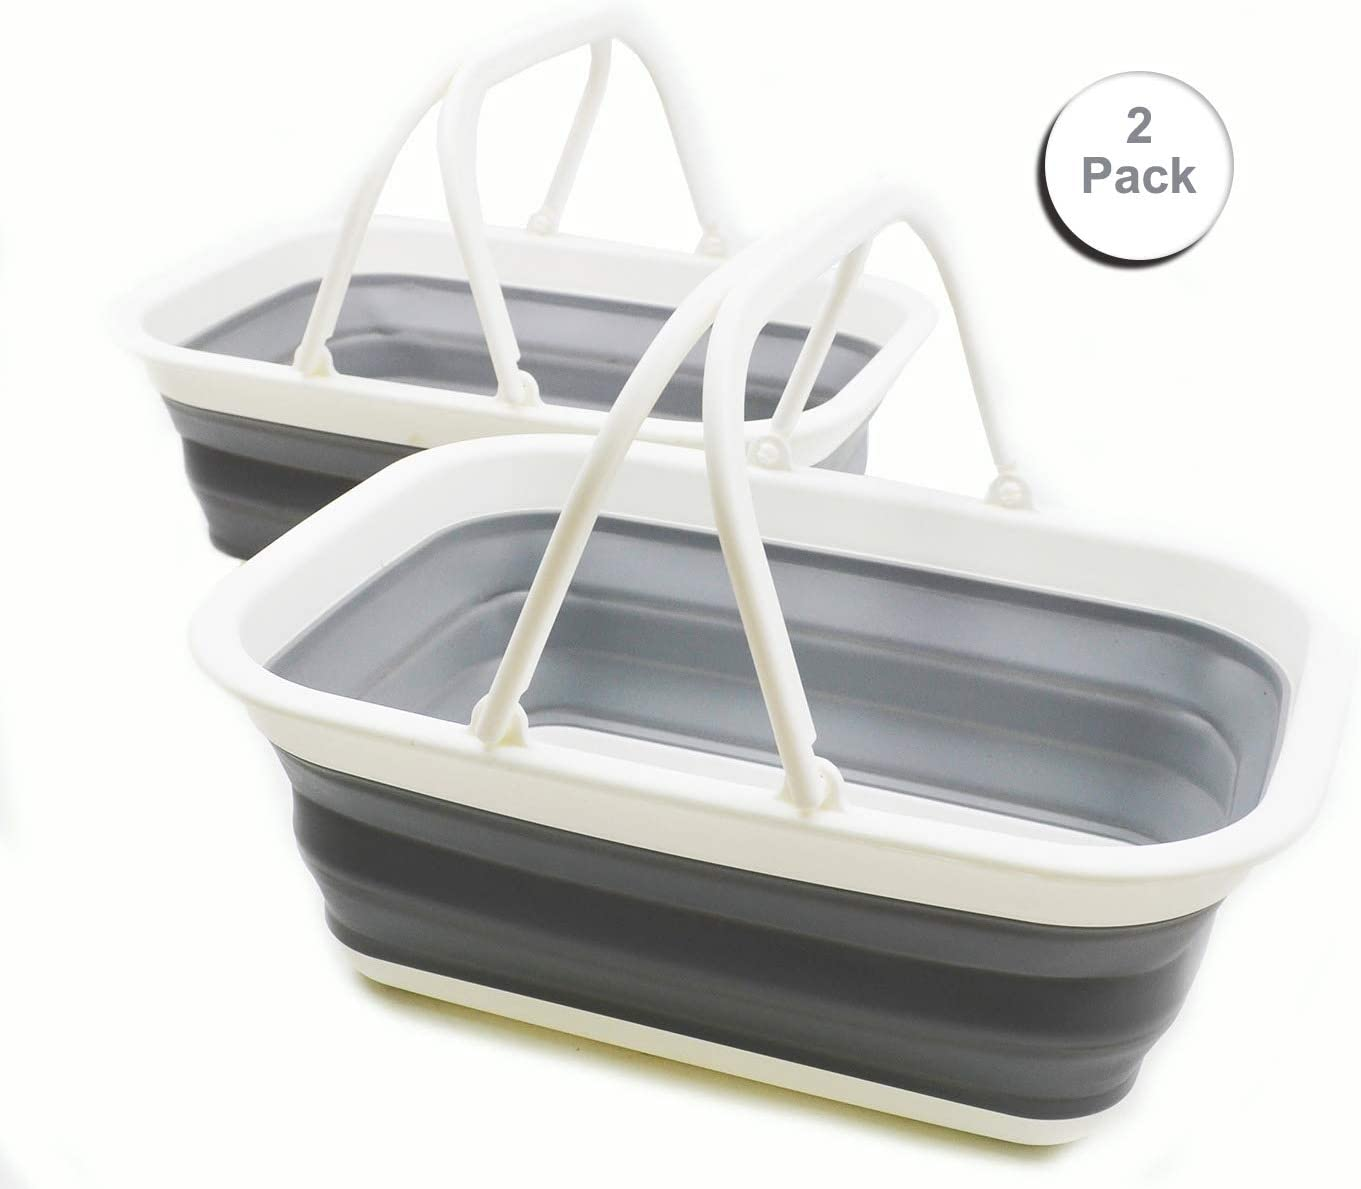 SAMMART 9.2L 2.37Gallon Collapsible Tub with Handle – Portable Outdoor Picnic Basket Crater – Foldable Shopping Bag – Space Saving Storage Container 2, White Grey